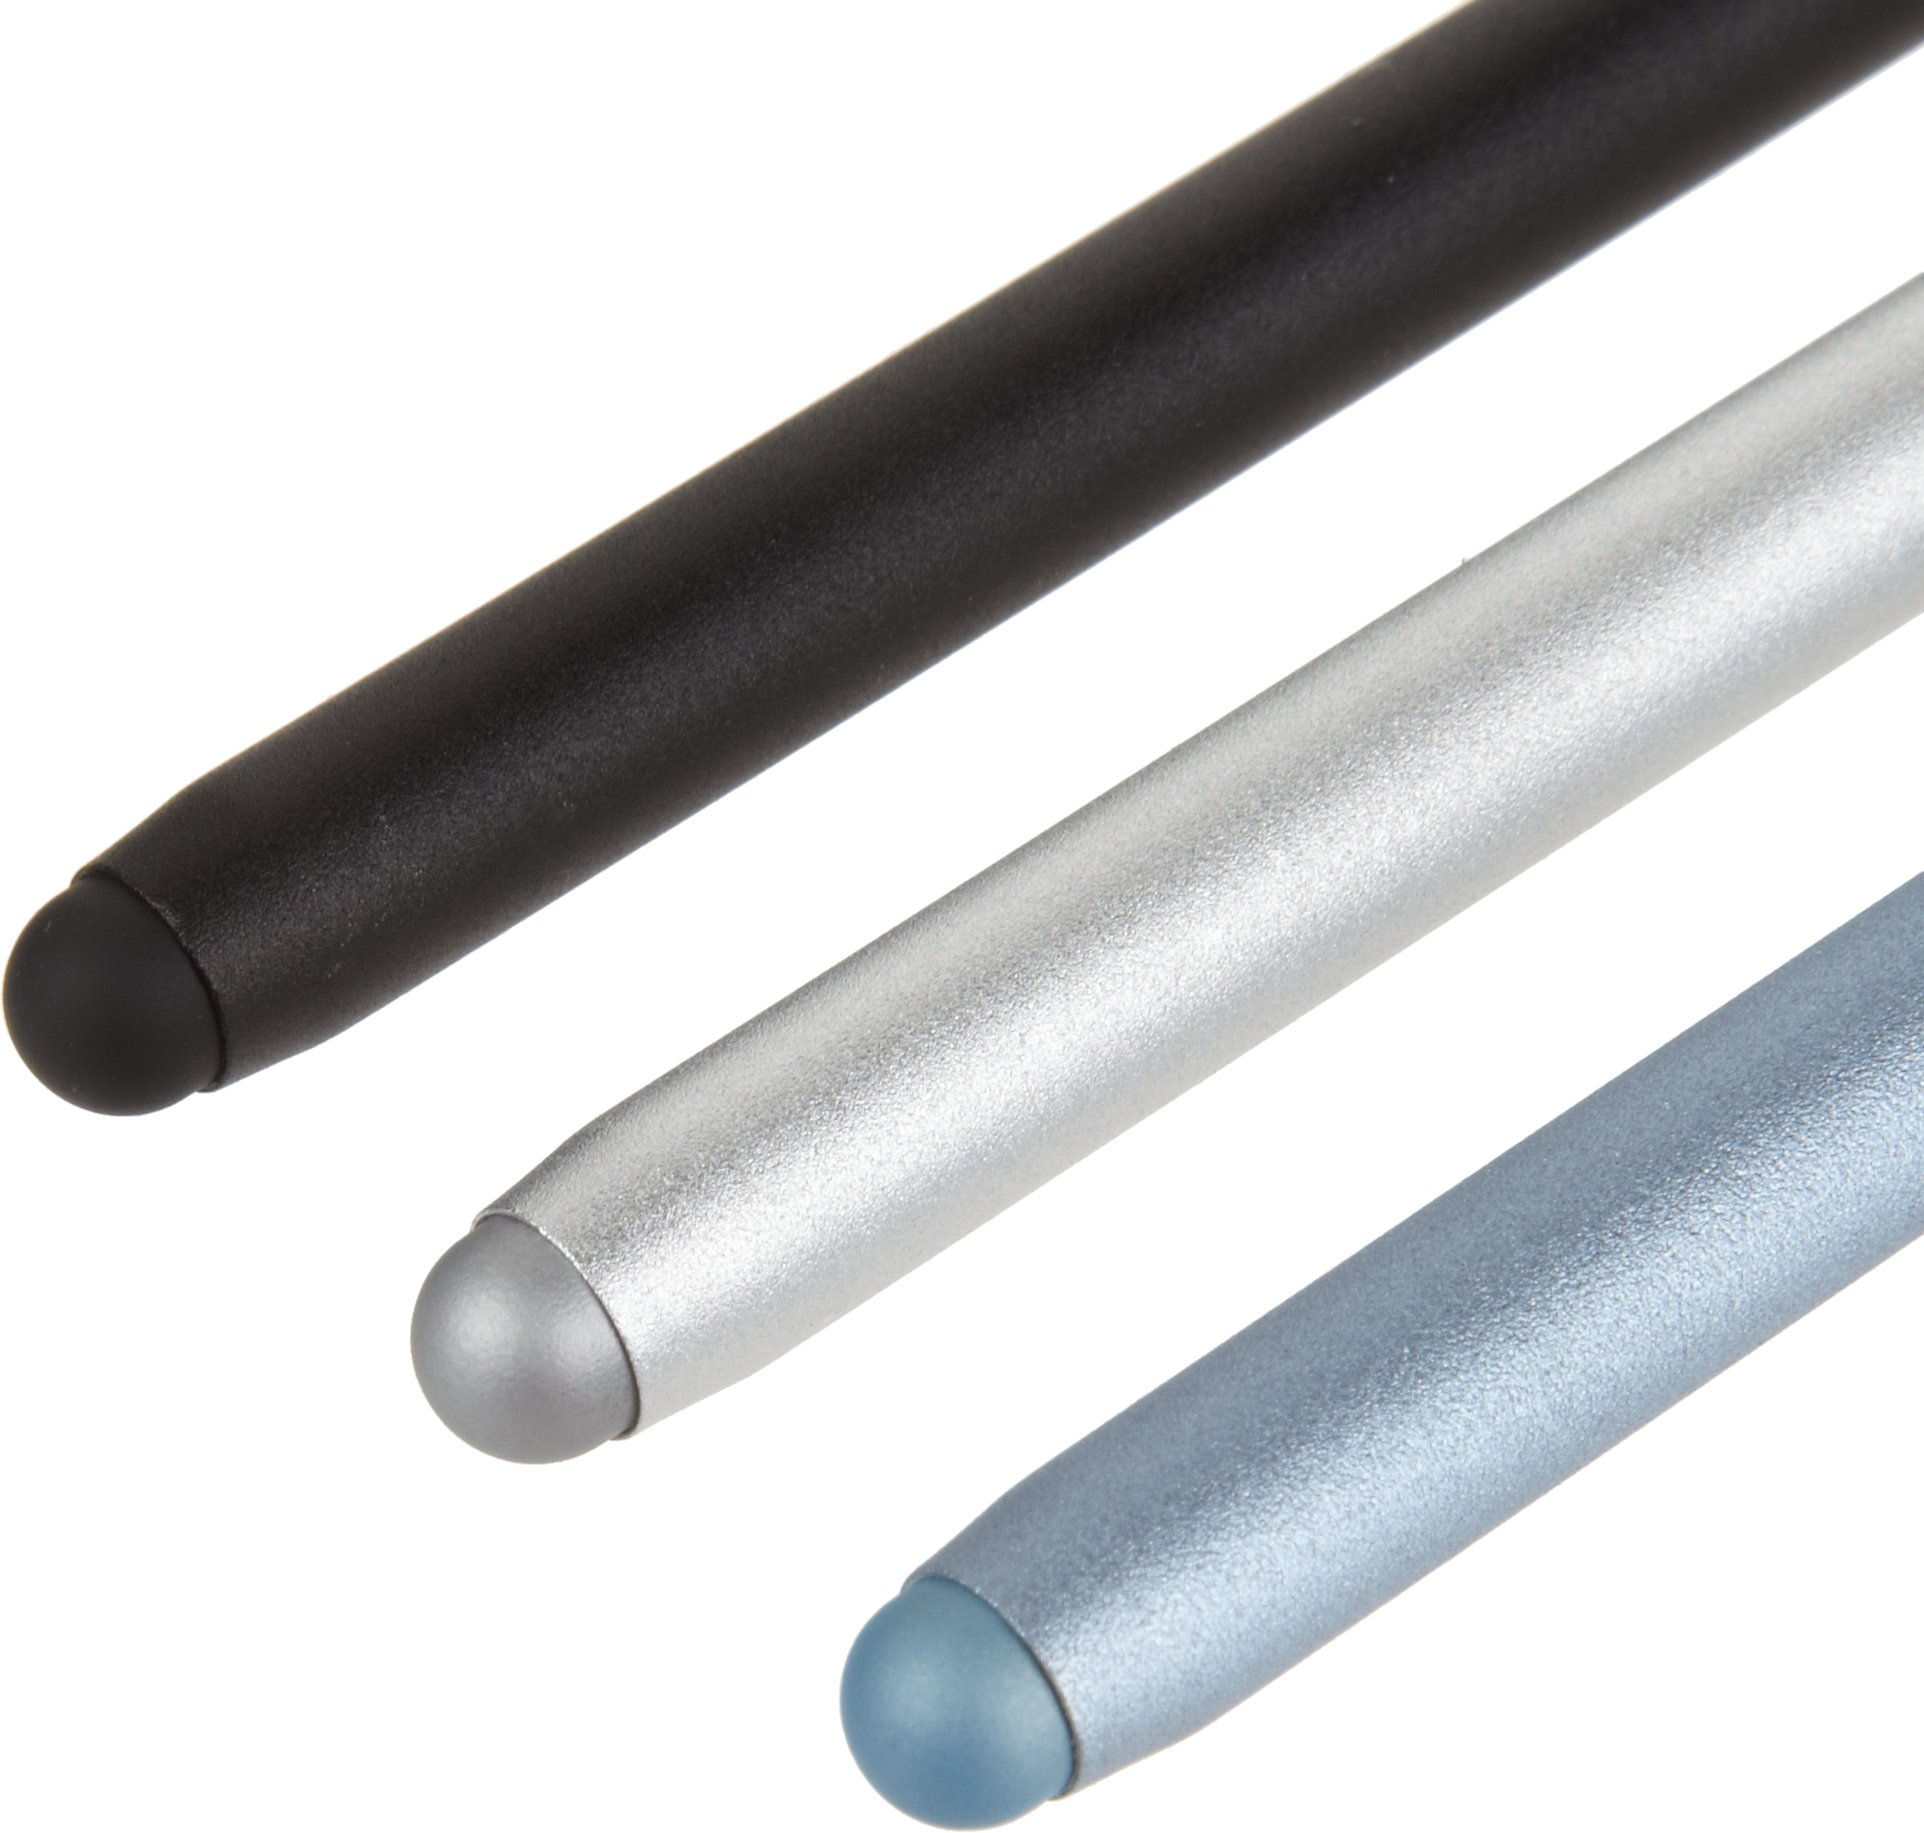 AmazonBasics 3-Pack Executive Stylus for Touchscreen Devices (Black, Silver, Blue) by AmazonBasics (Image #2)